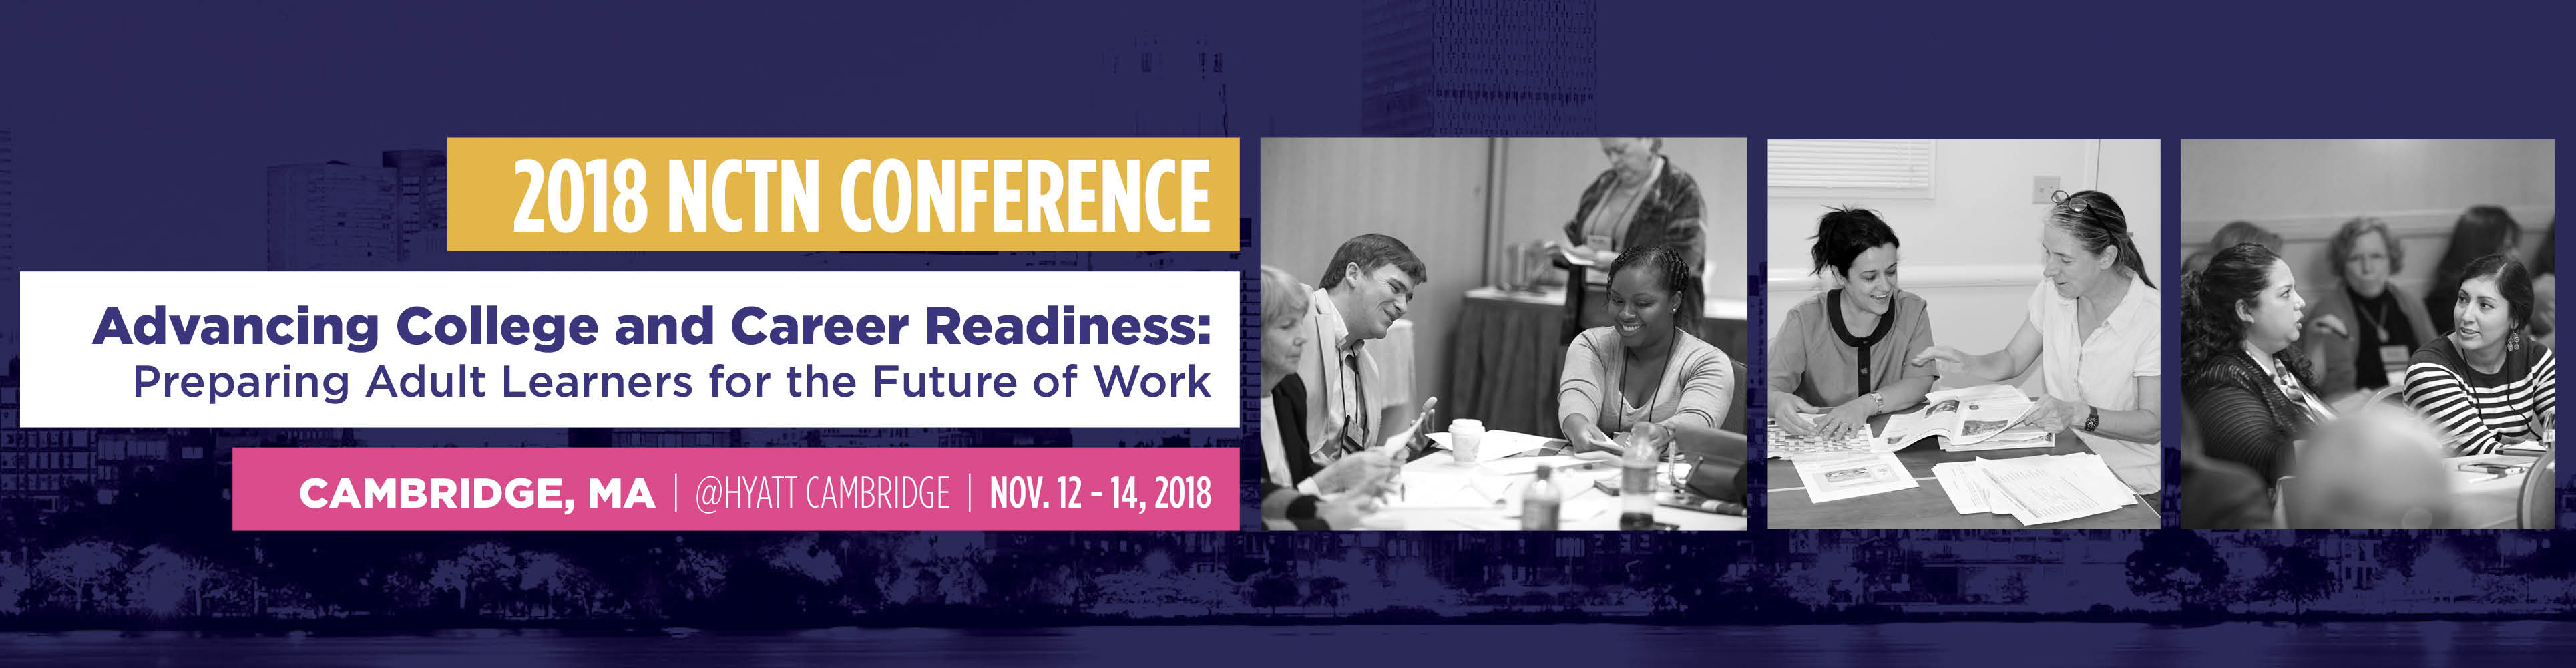 2018 NCTN Conference